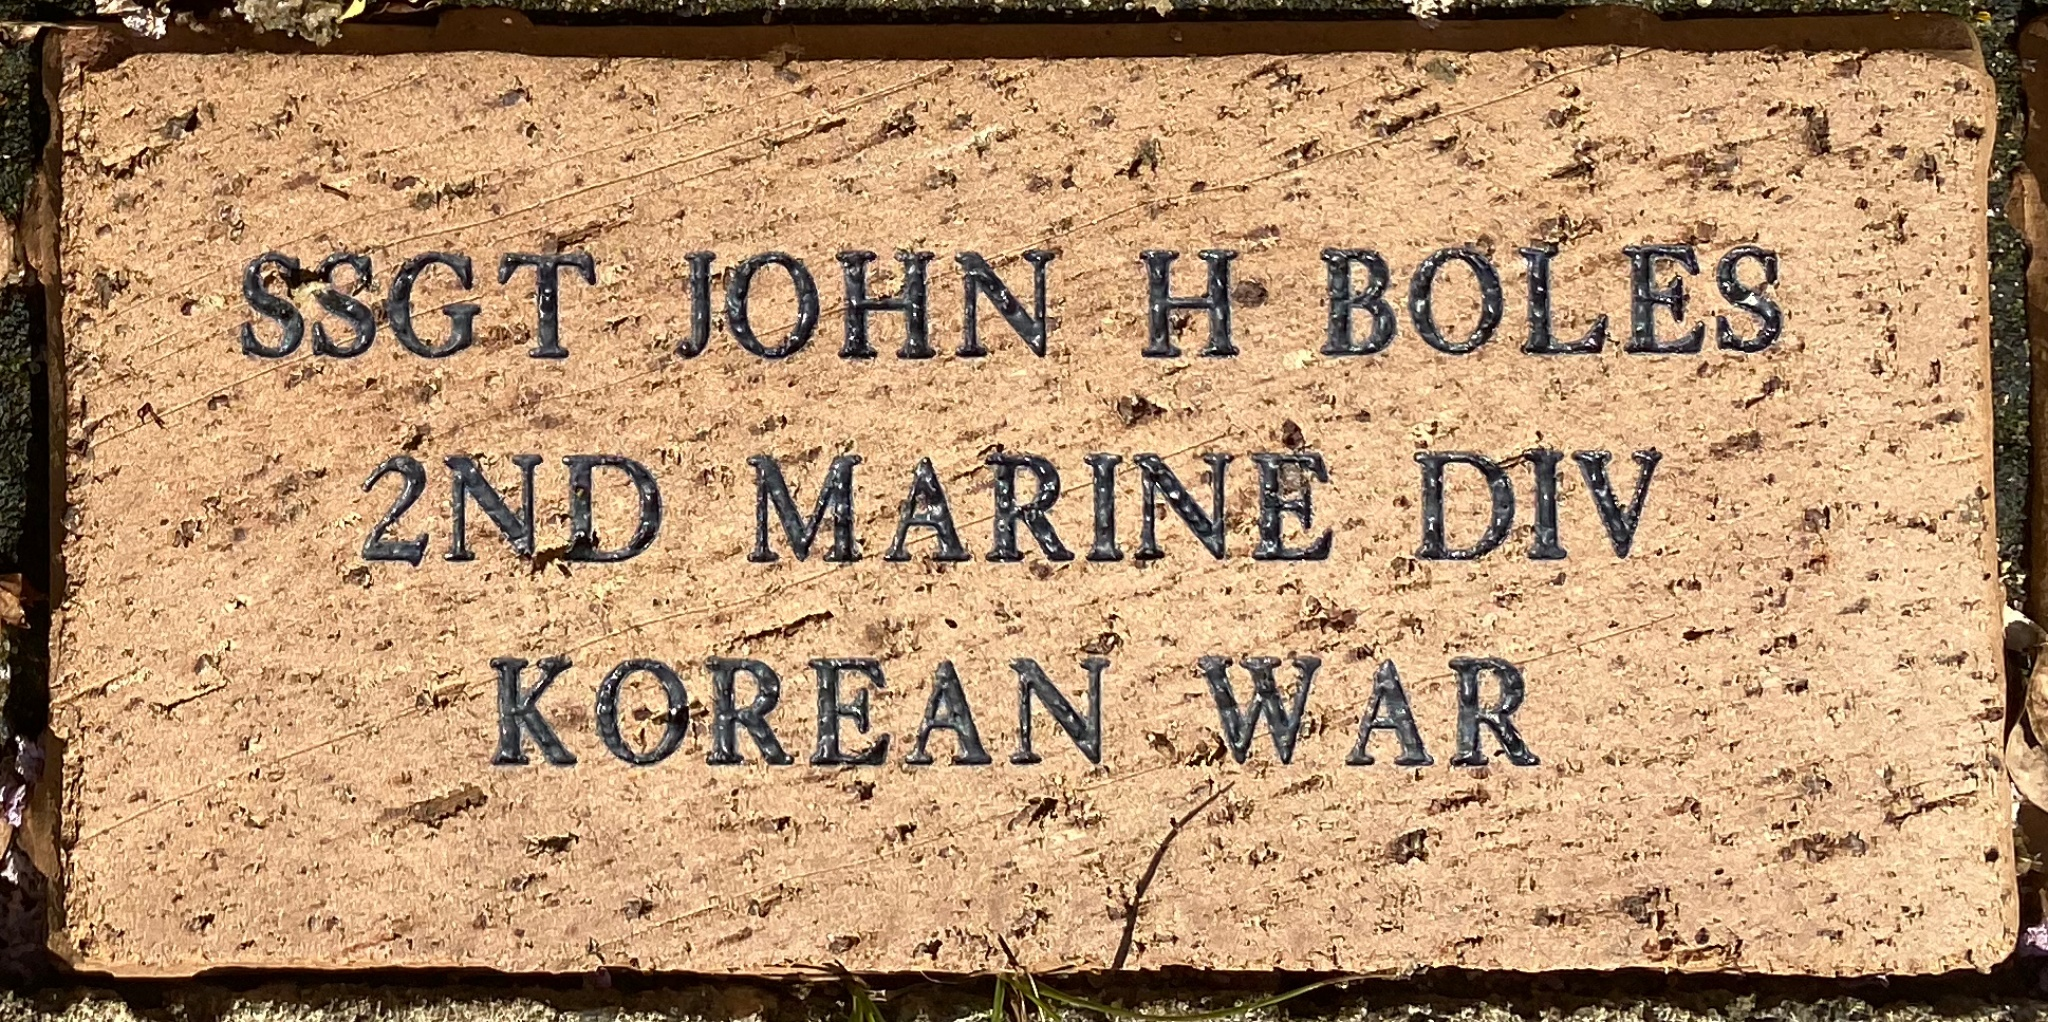 SSGT JOHN H BOLES 2ND MARINE DIV KOREAN WAR